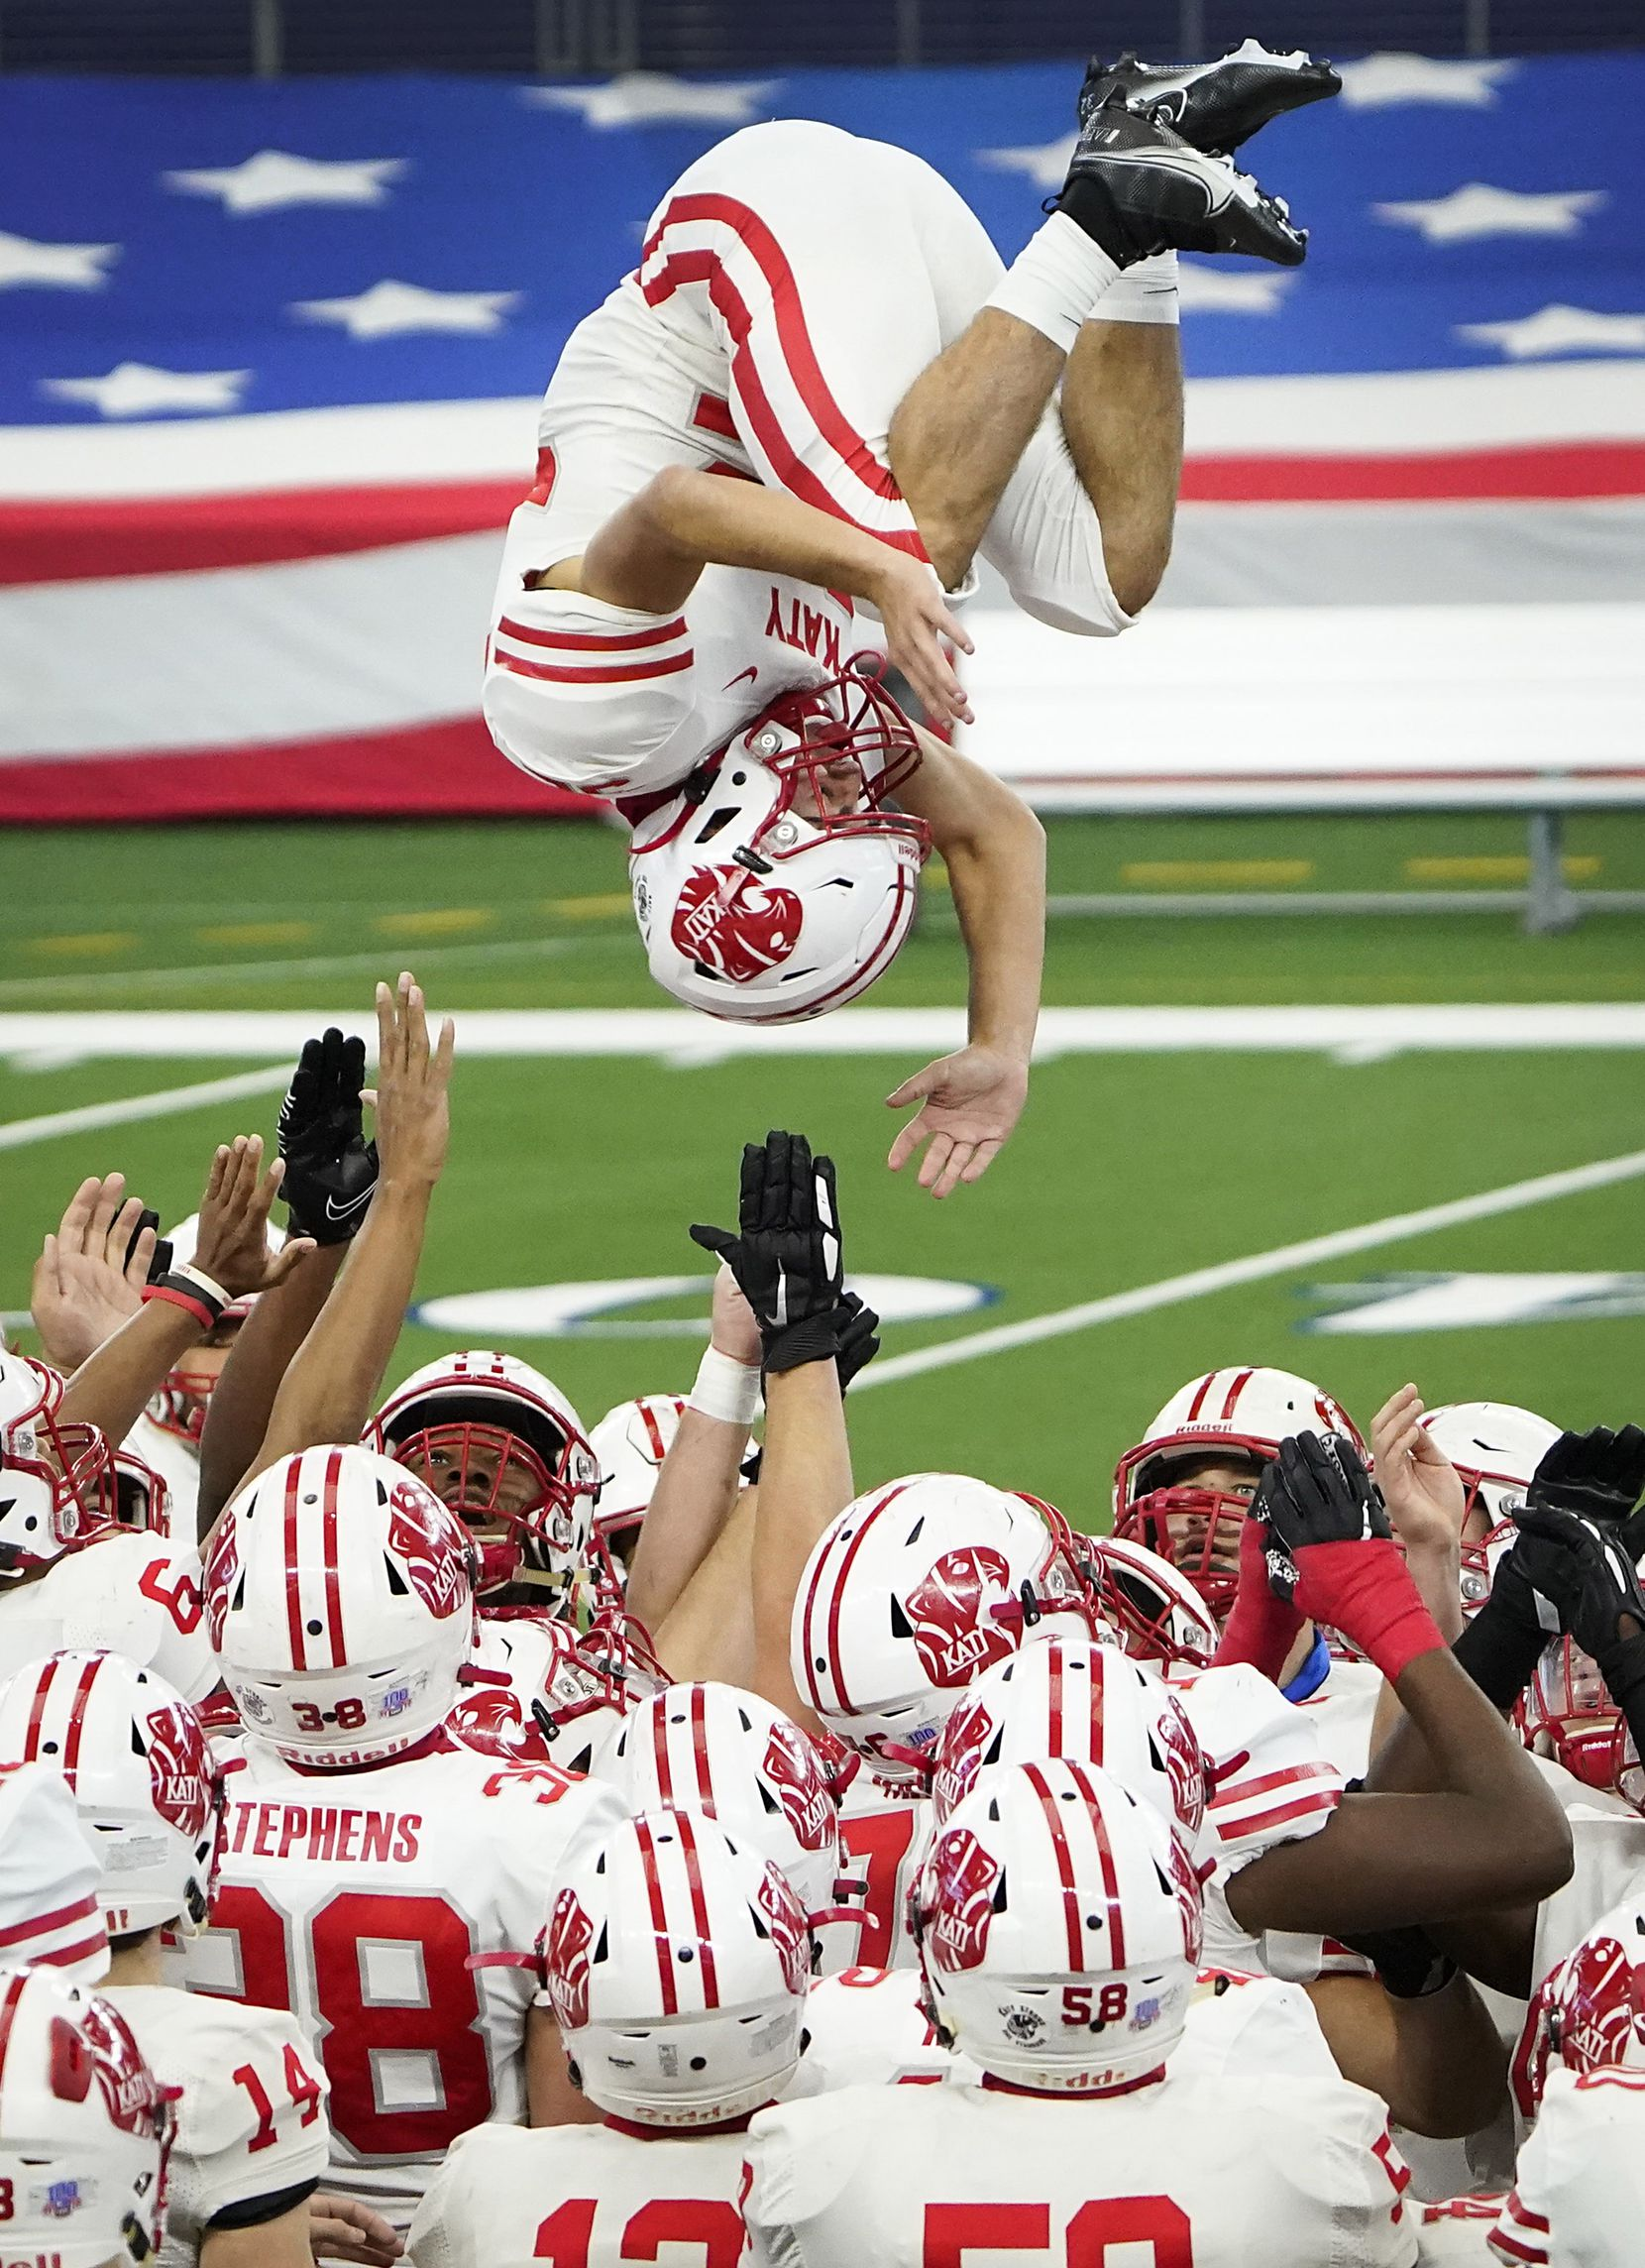 Katy defensive back Colton Cable (32) flips over his teammates as the team takes the field for the Class 6A Division II state football championship  game against Cedar Hill at AT&T Stadium on Saturday, Jan. 16, 2021, in Arlington, Texas.